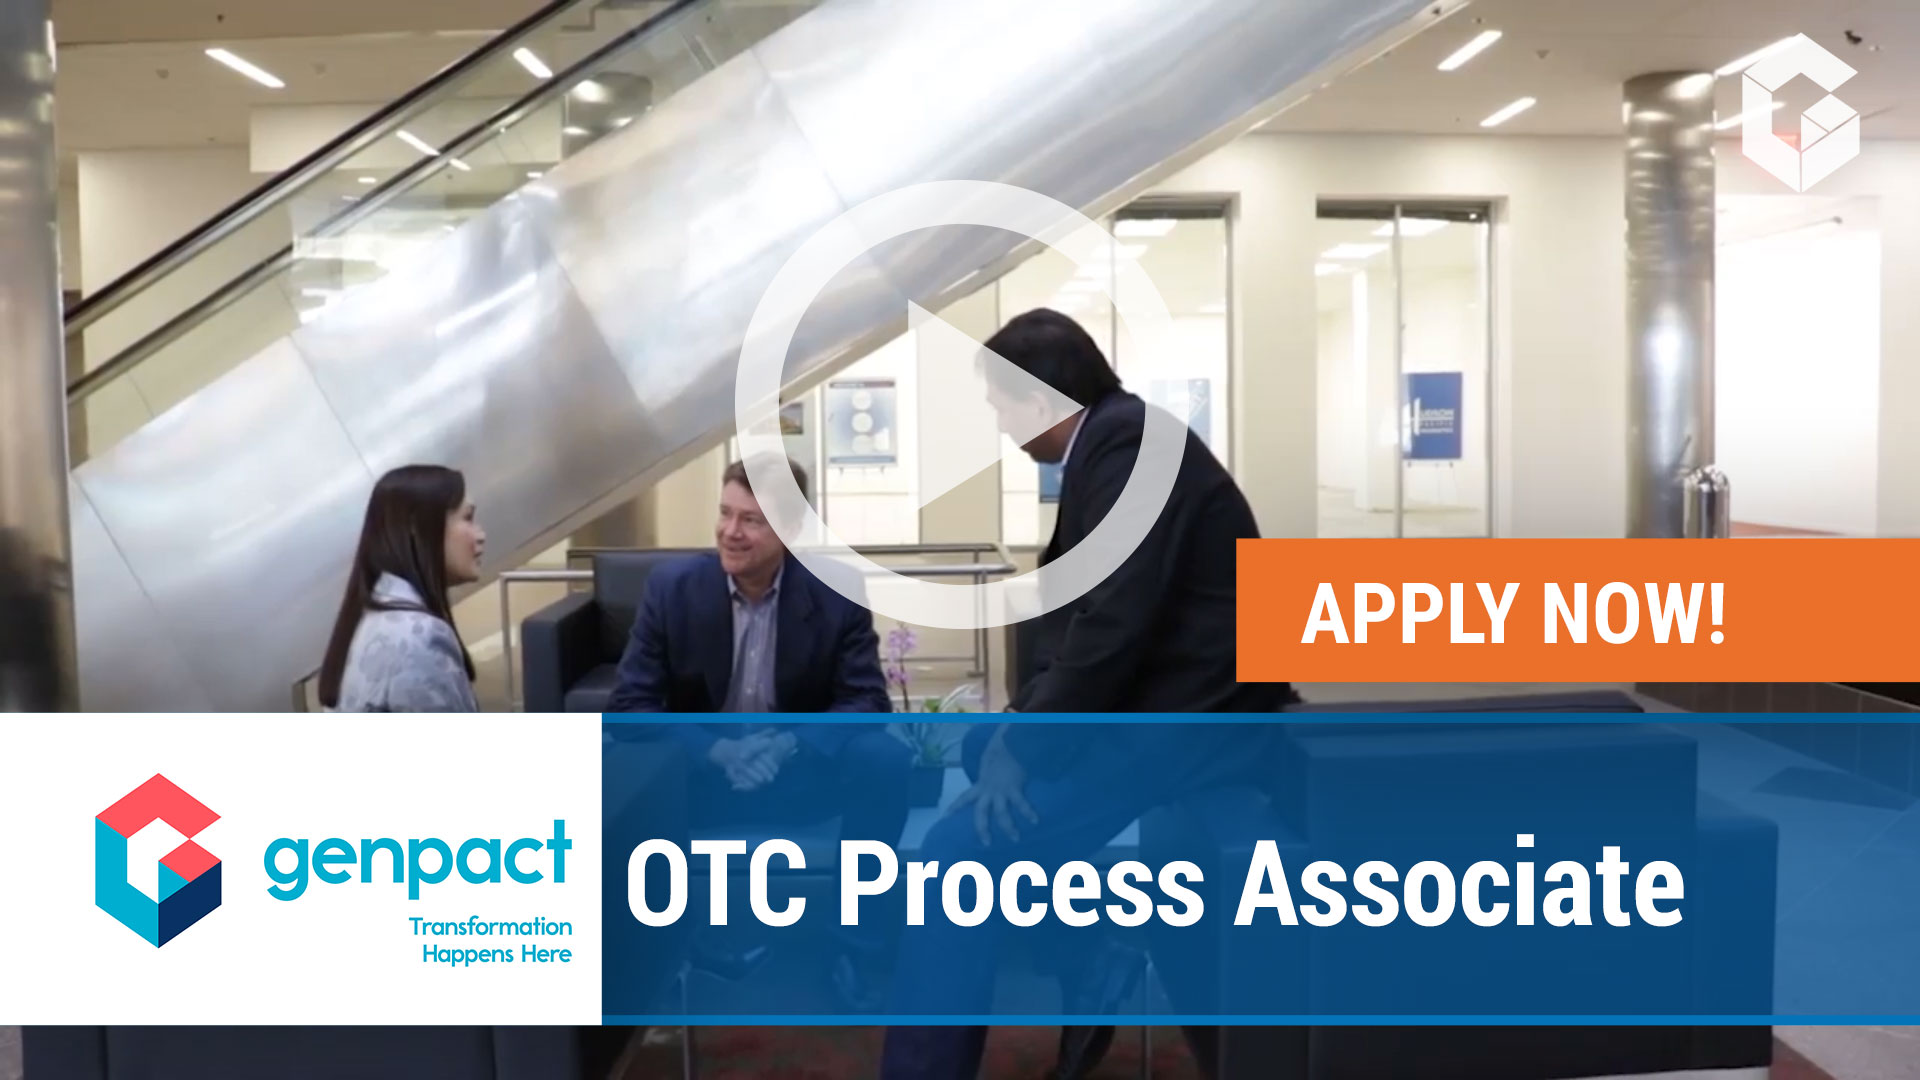 Watch our careers video for available job opening OTC Process Associate in Wilkes-Barre, Pennsylvania